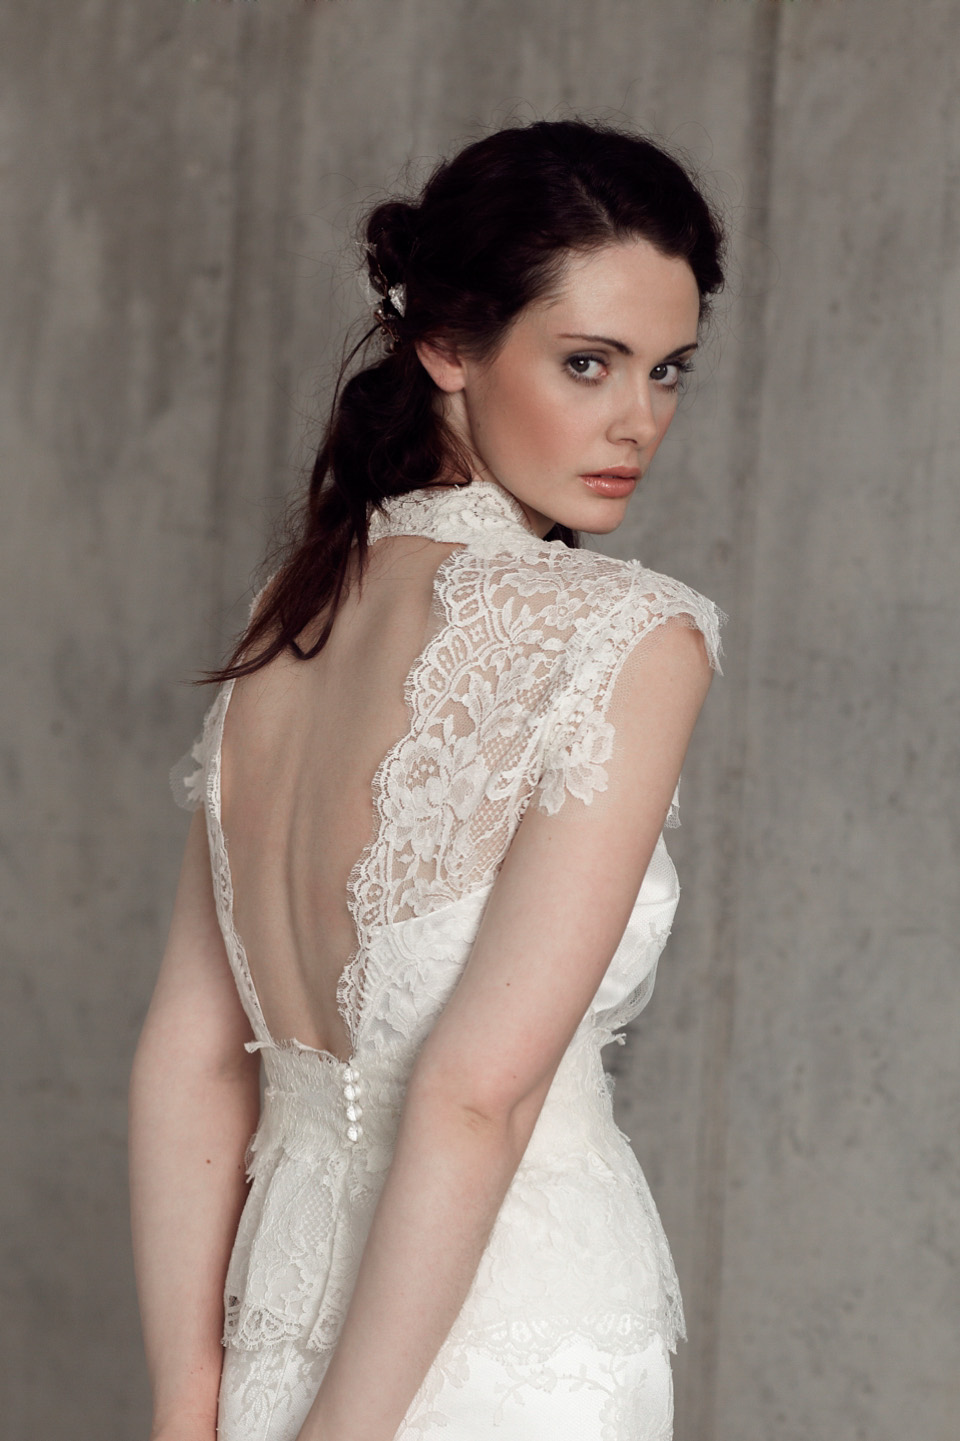 Bridal Separates by Sally Lacock: An Exquisite and Elegant Collection of 2-Piece Wedding Dresses